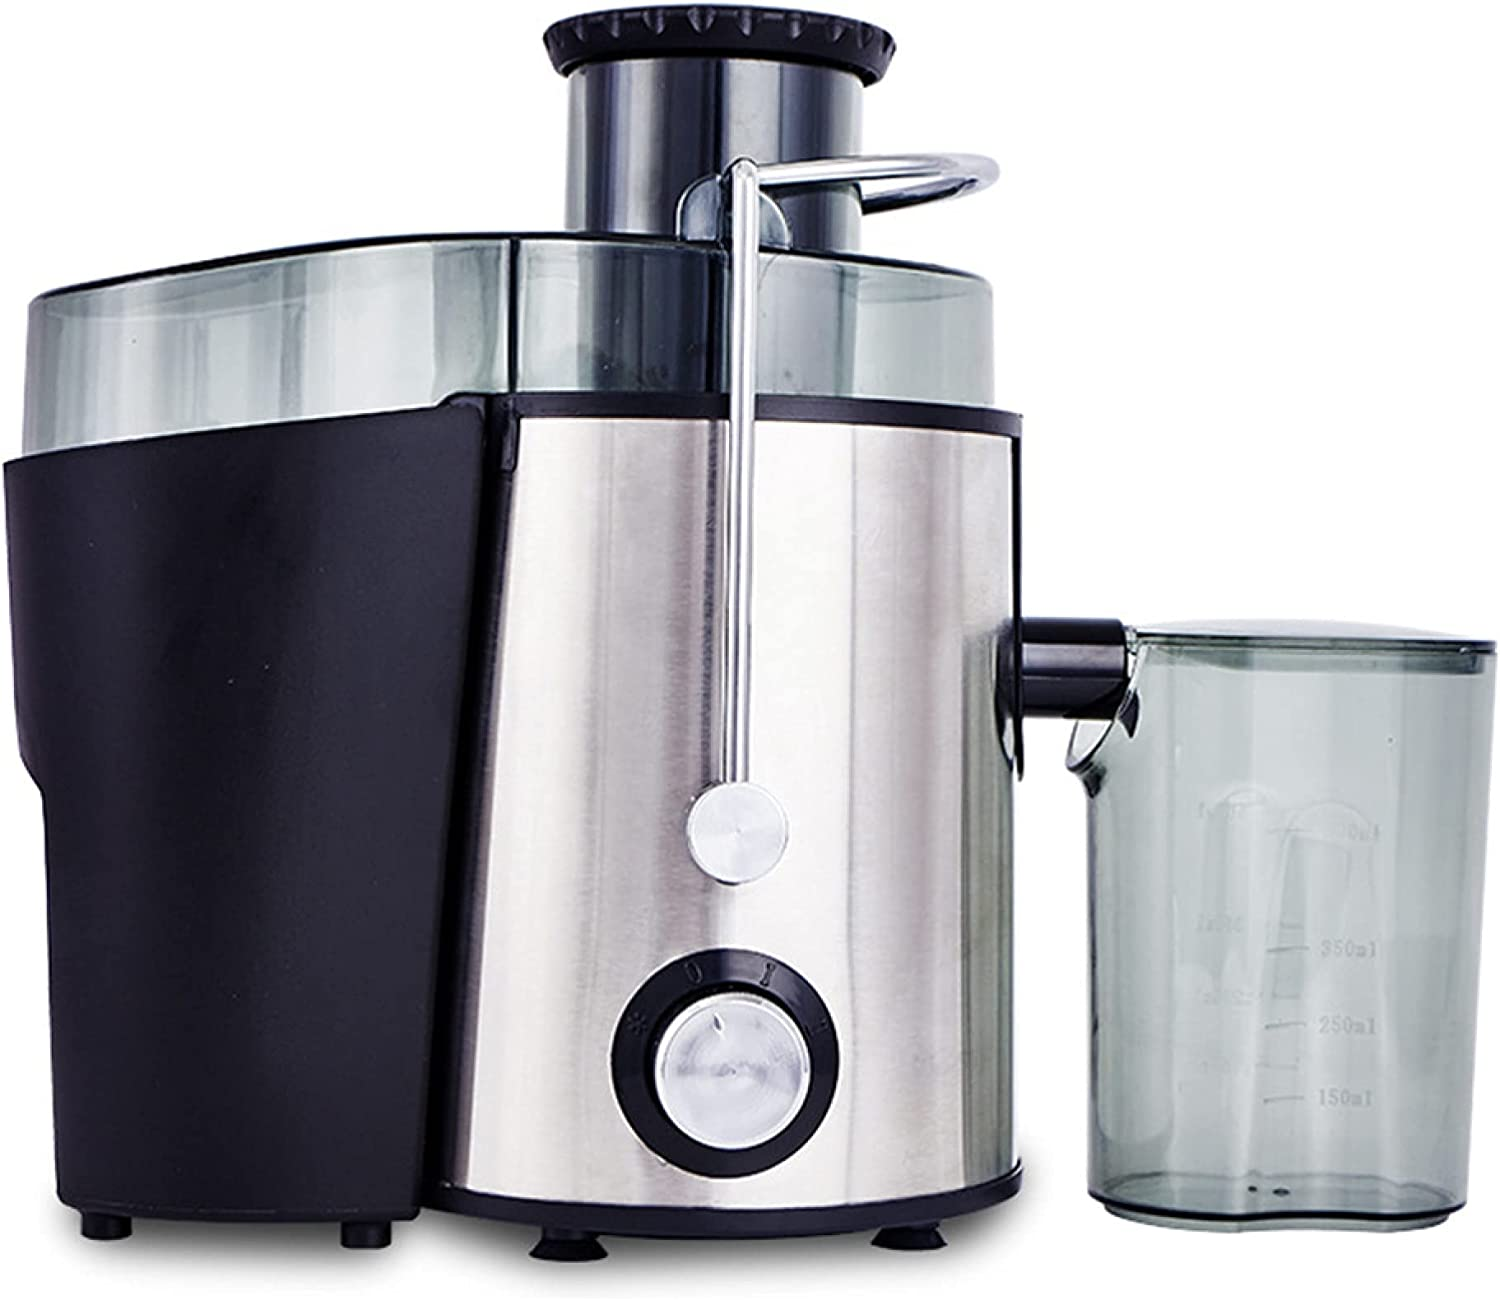 Juicer Award-winning store Upgraded Machine for security Whole and wi Fruit Vegetable